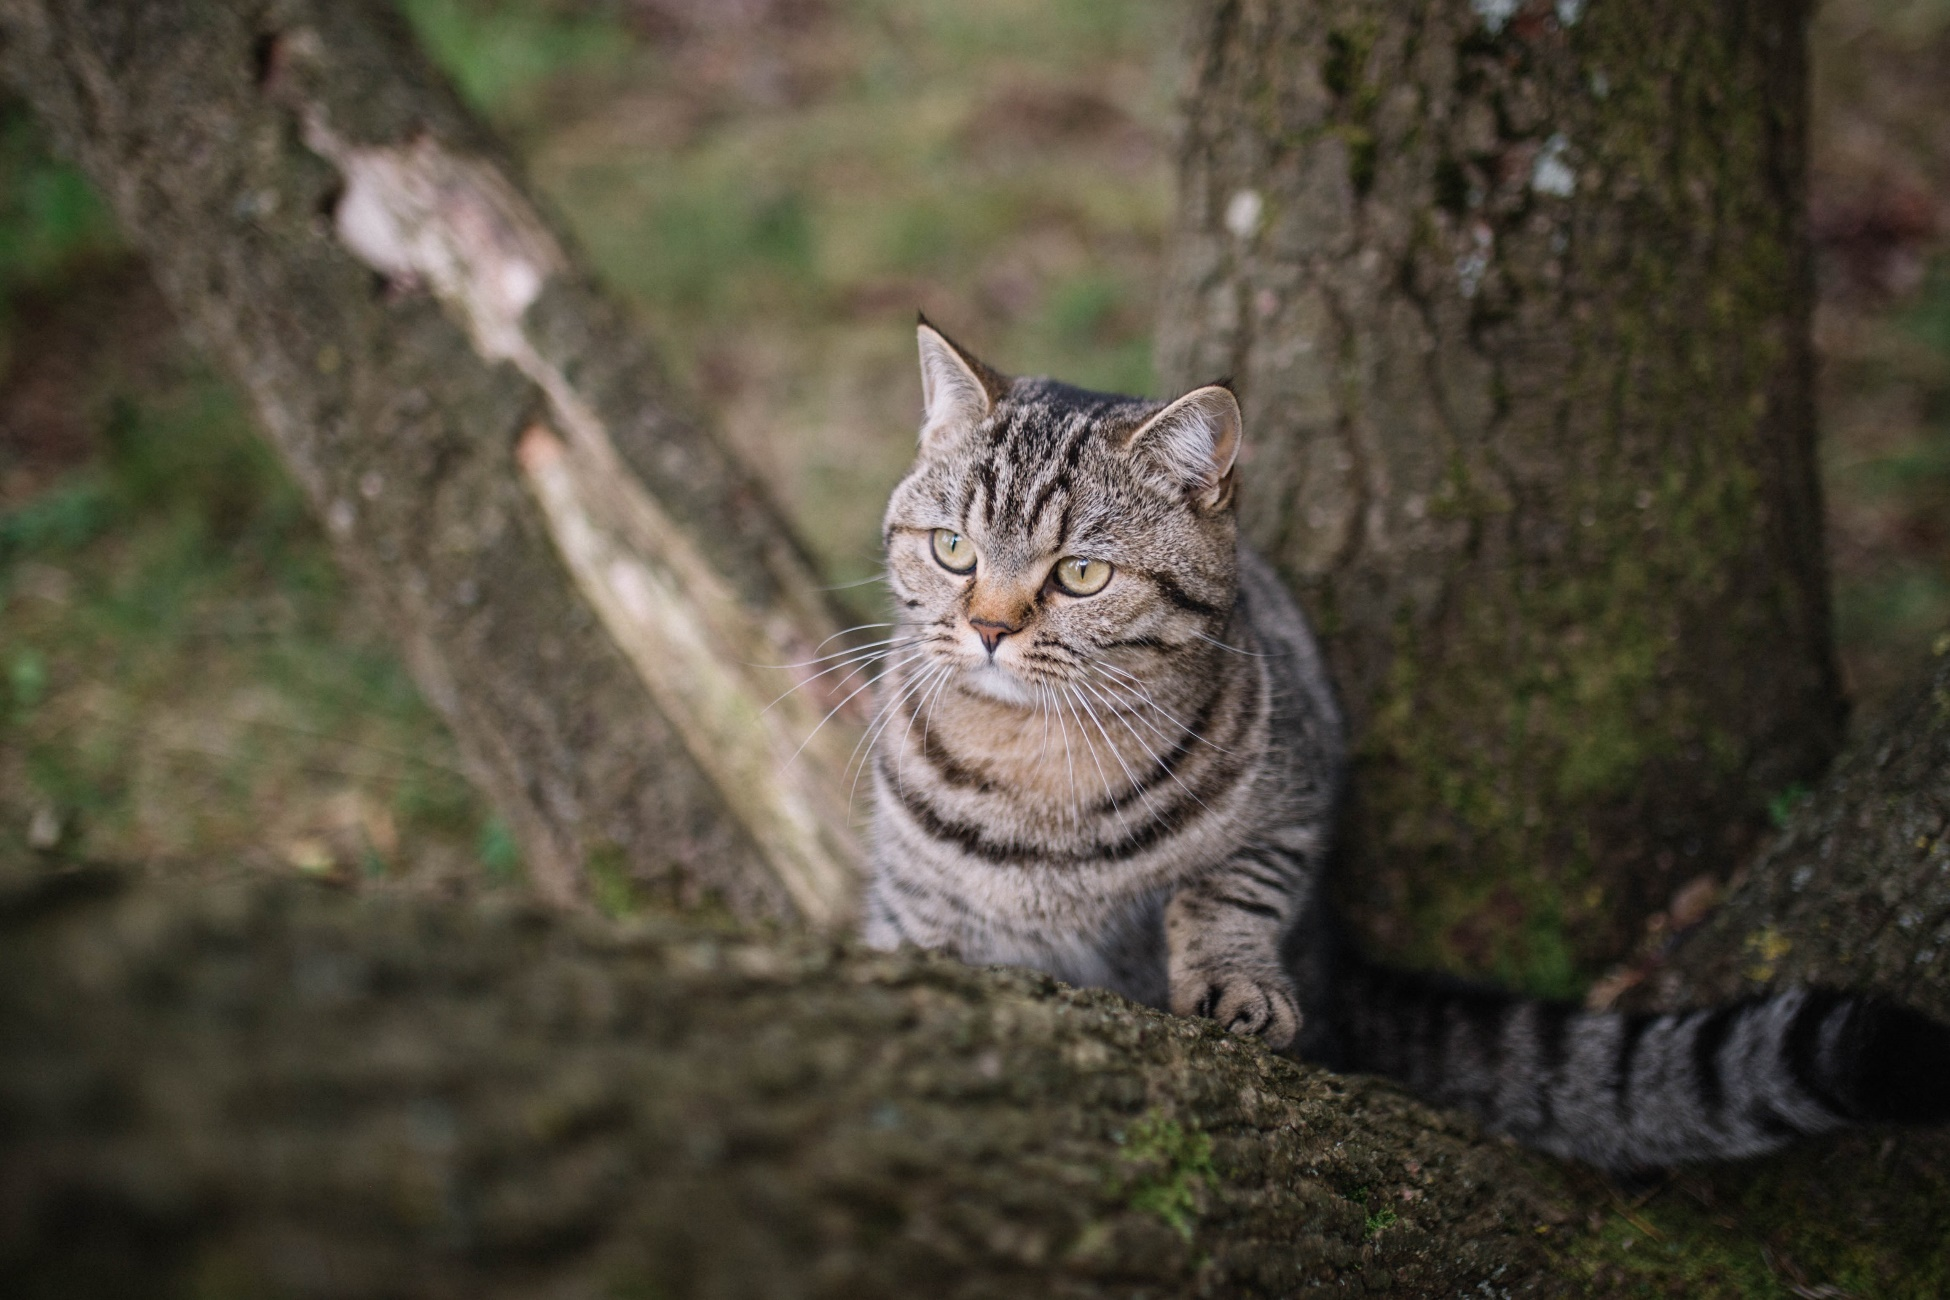 Flapjack the cat in a tree